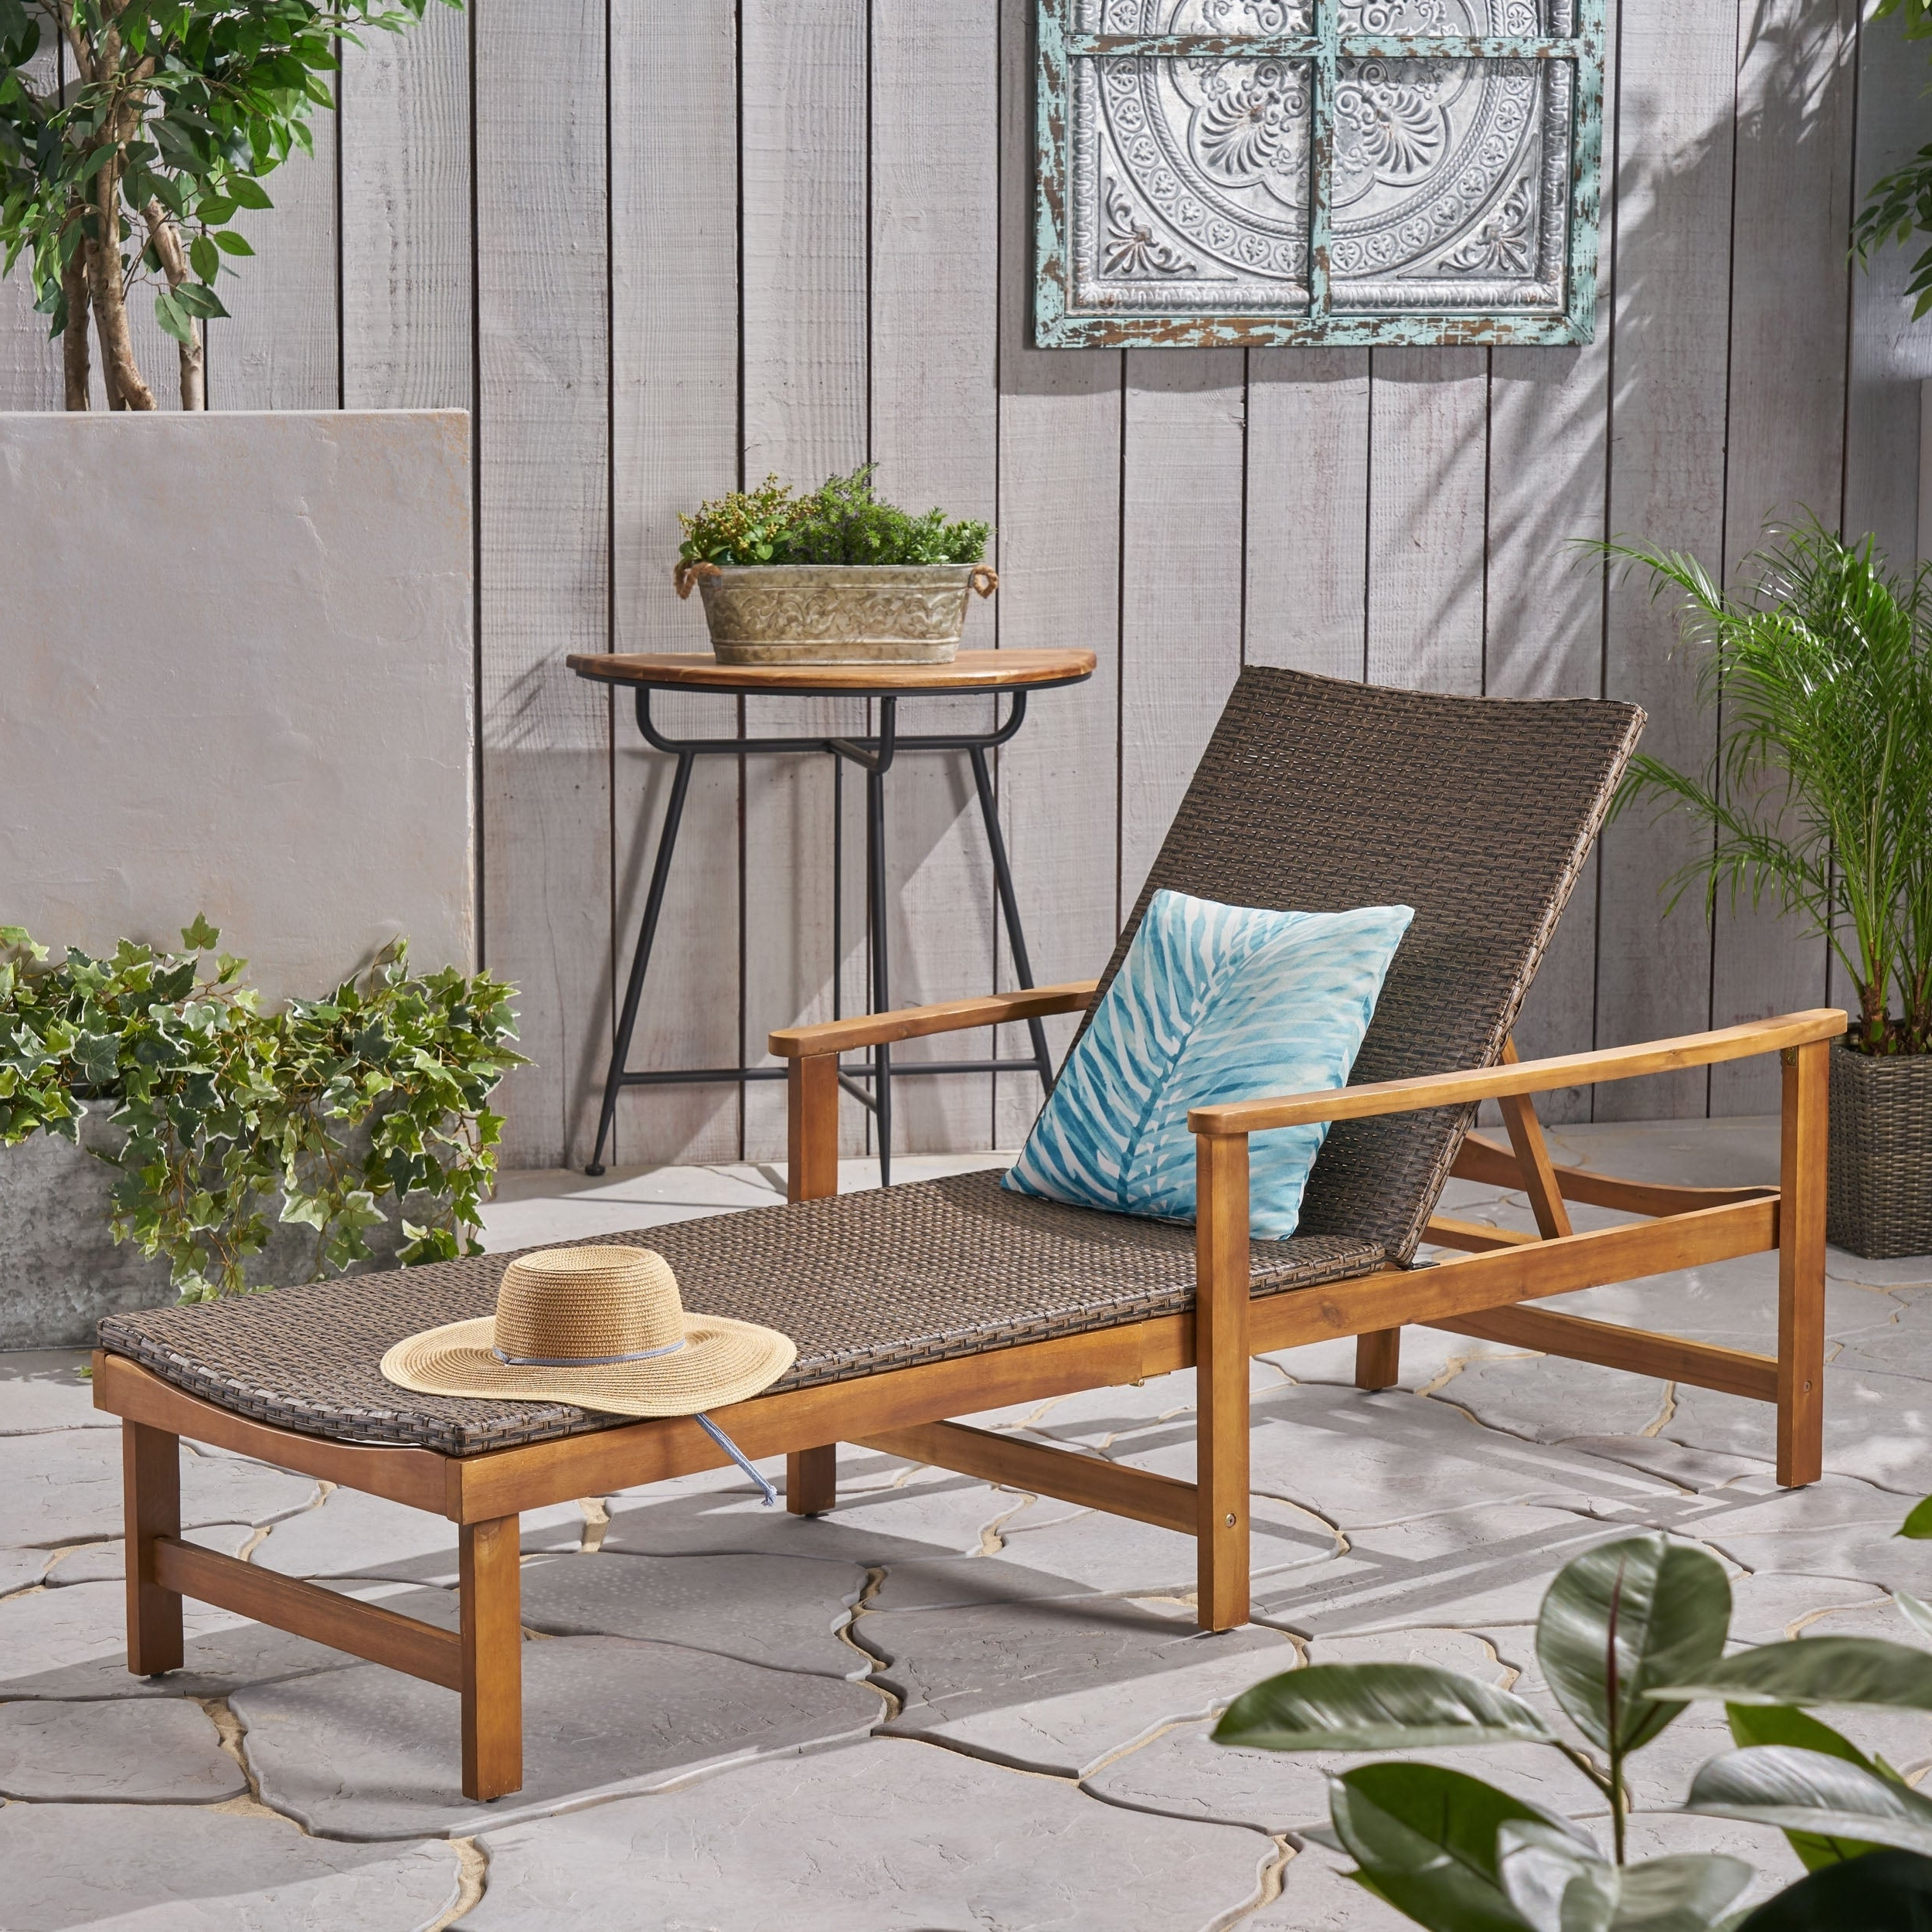 Featured Photo of Outdoor Rustic Acacia Wood Chaise Lounges With Wicker Seats